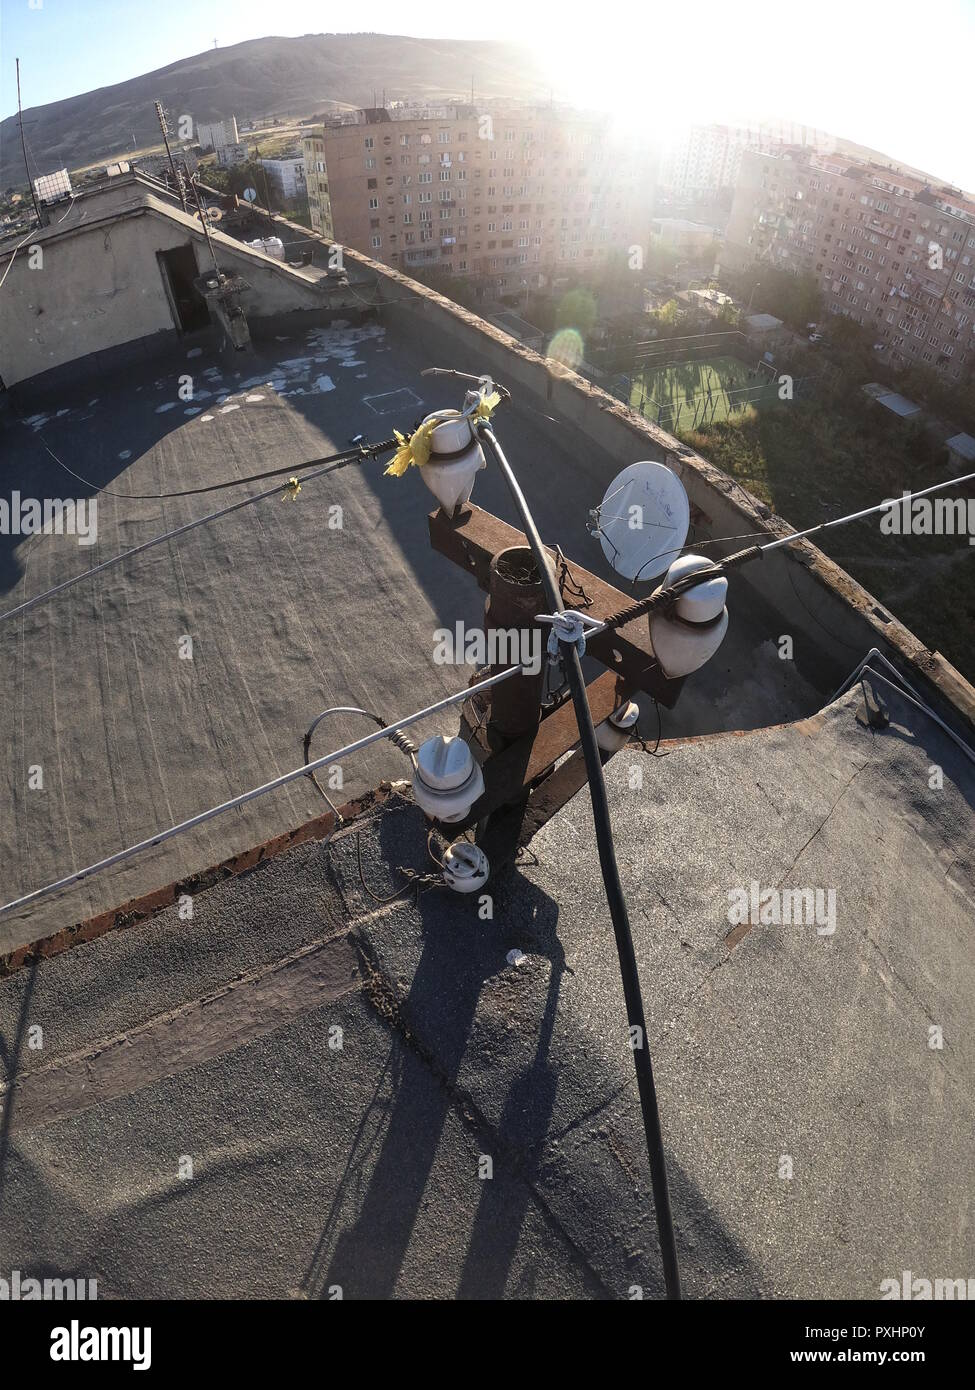 Old Wiring Stock Photos Images Alamy In House On The Roof Of Image